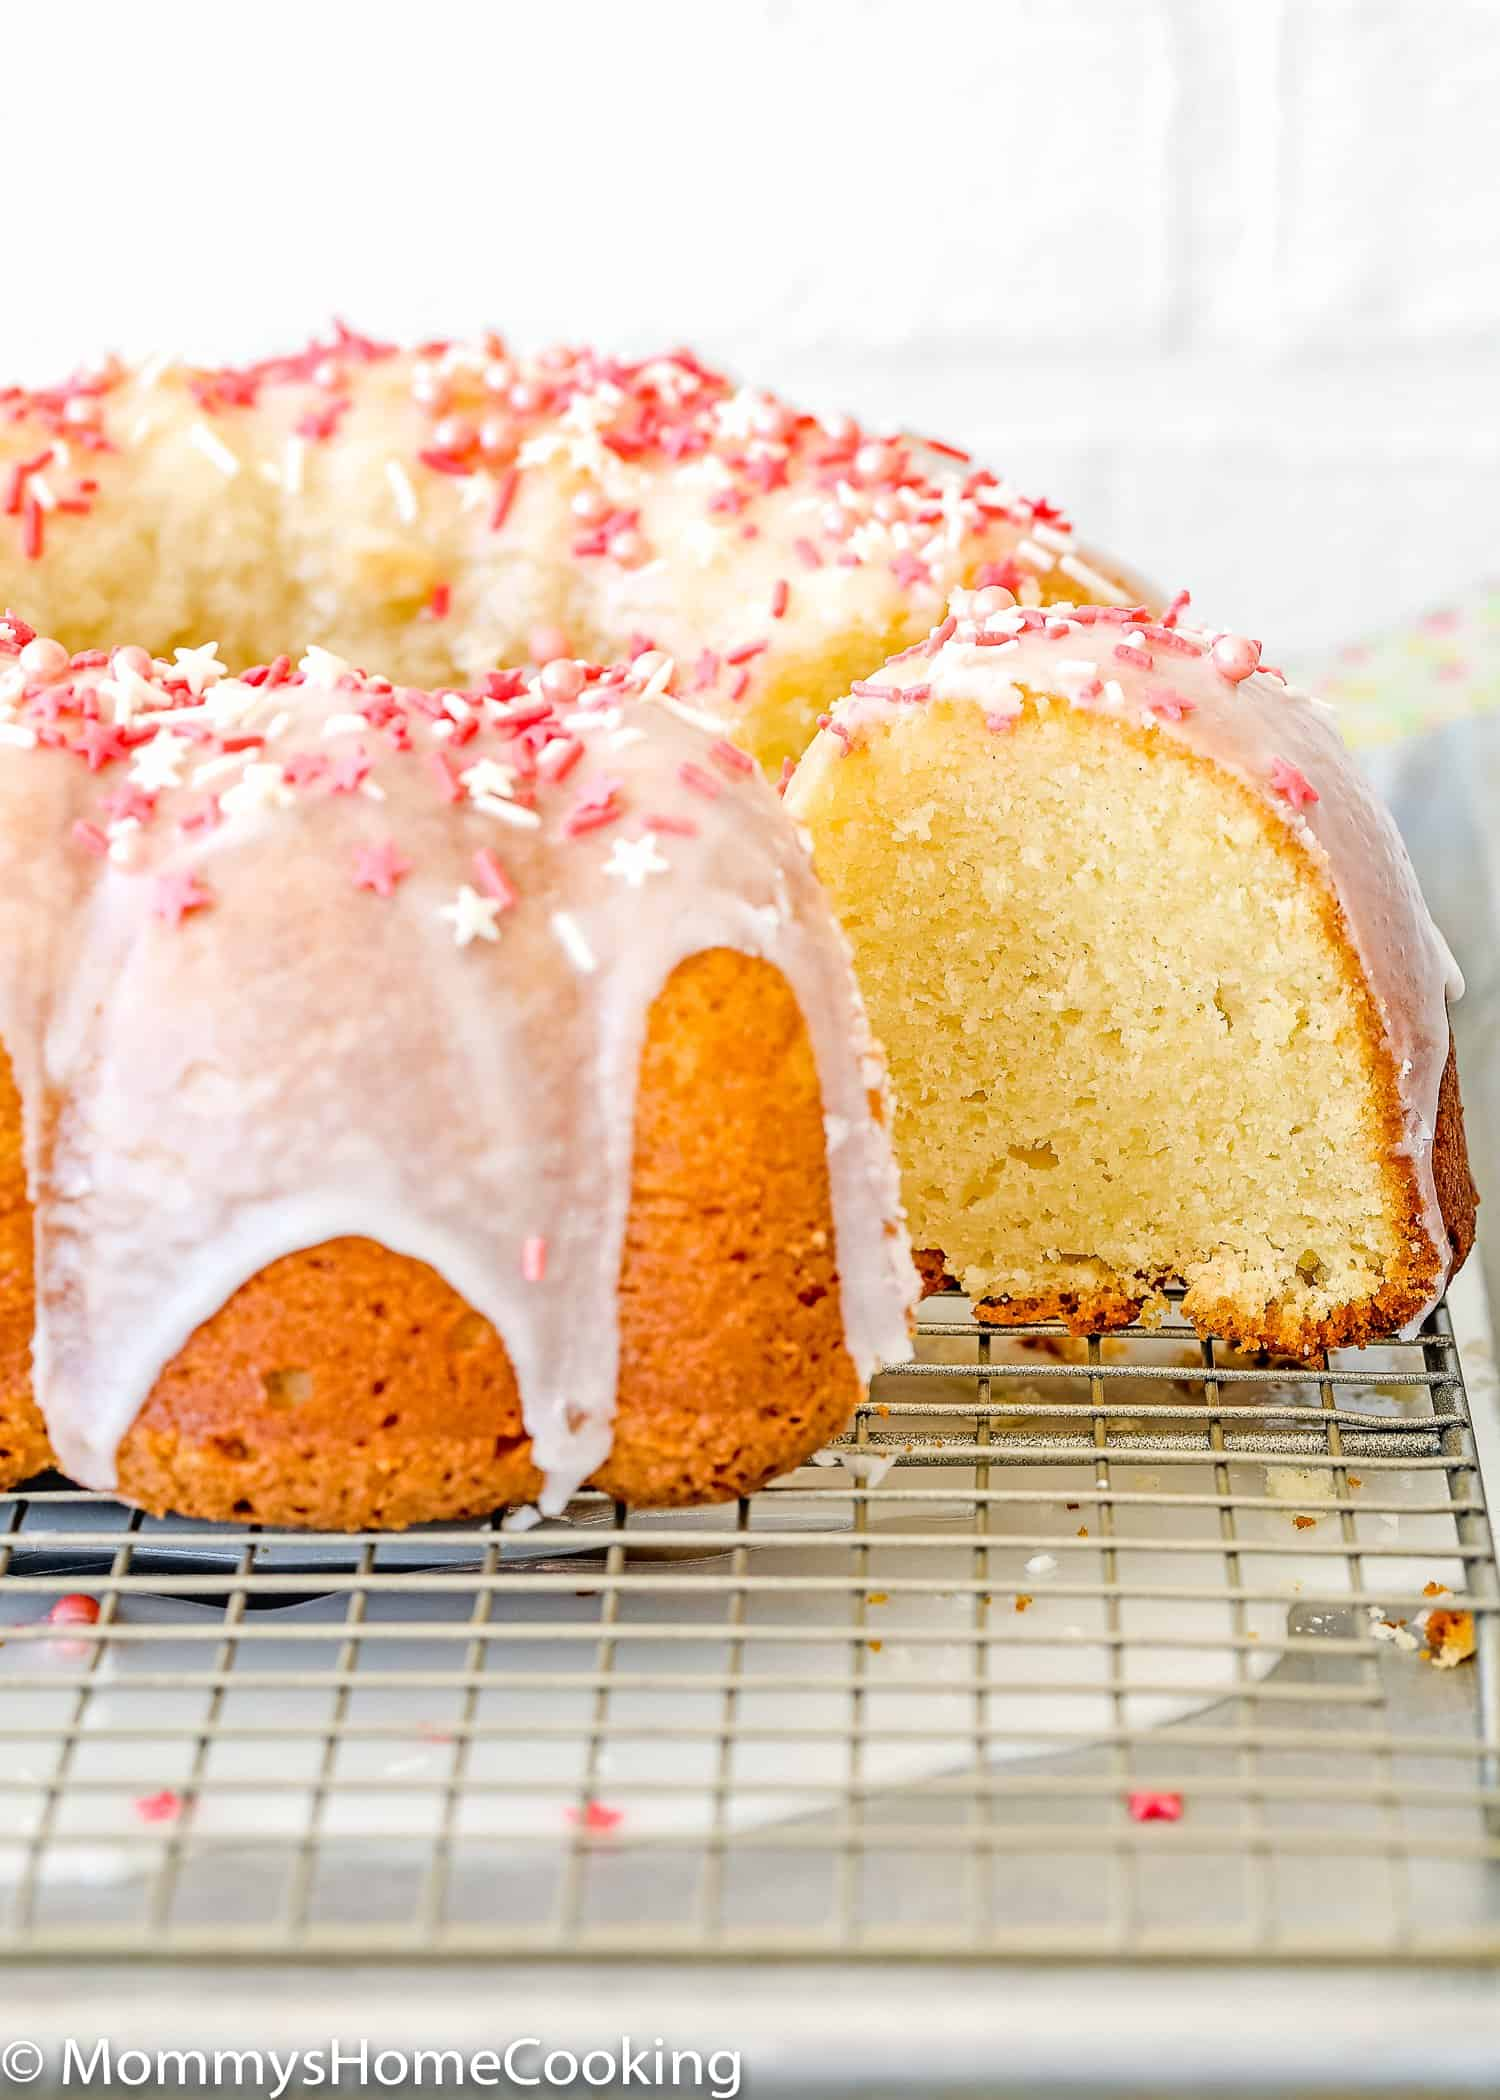 This Easy Eggless Vanilla Pound Cake recipe is easy to make, super moist, and very rich!  Made with simple ingredients, this fine-grained and tender cake will be a guaranteed showstopper whether you serve it. https://mommyshomecooking.com